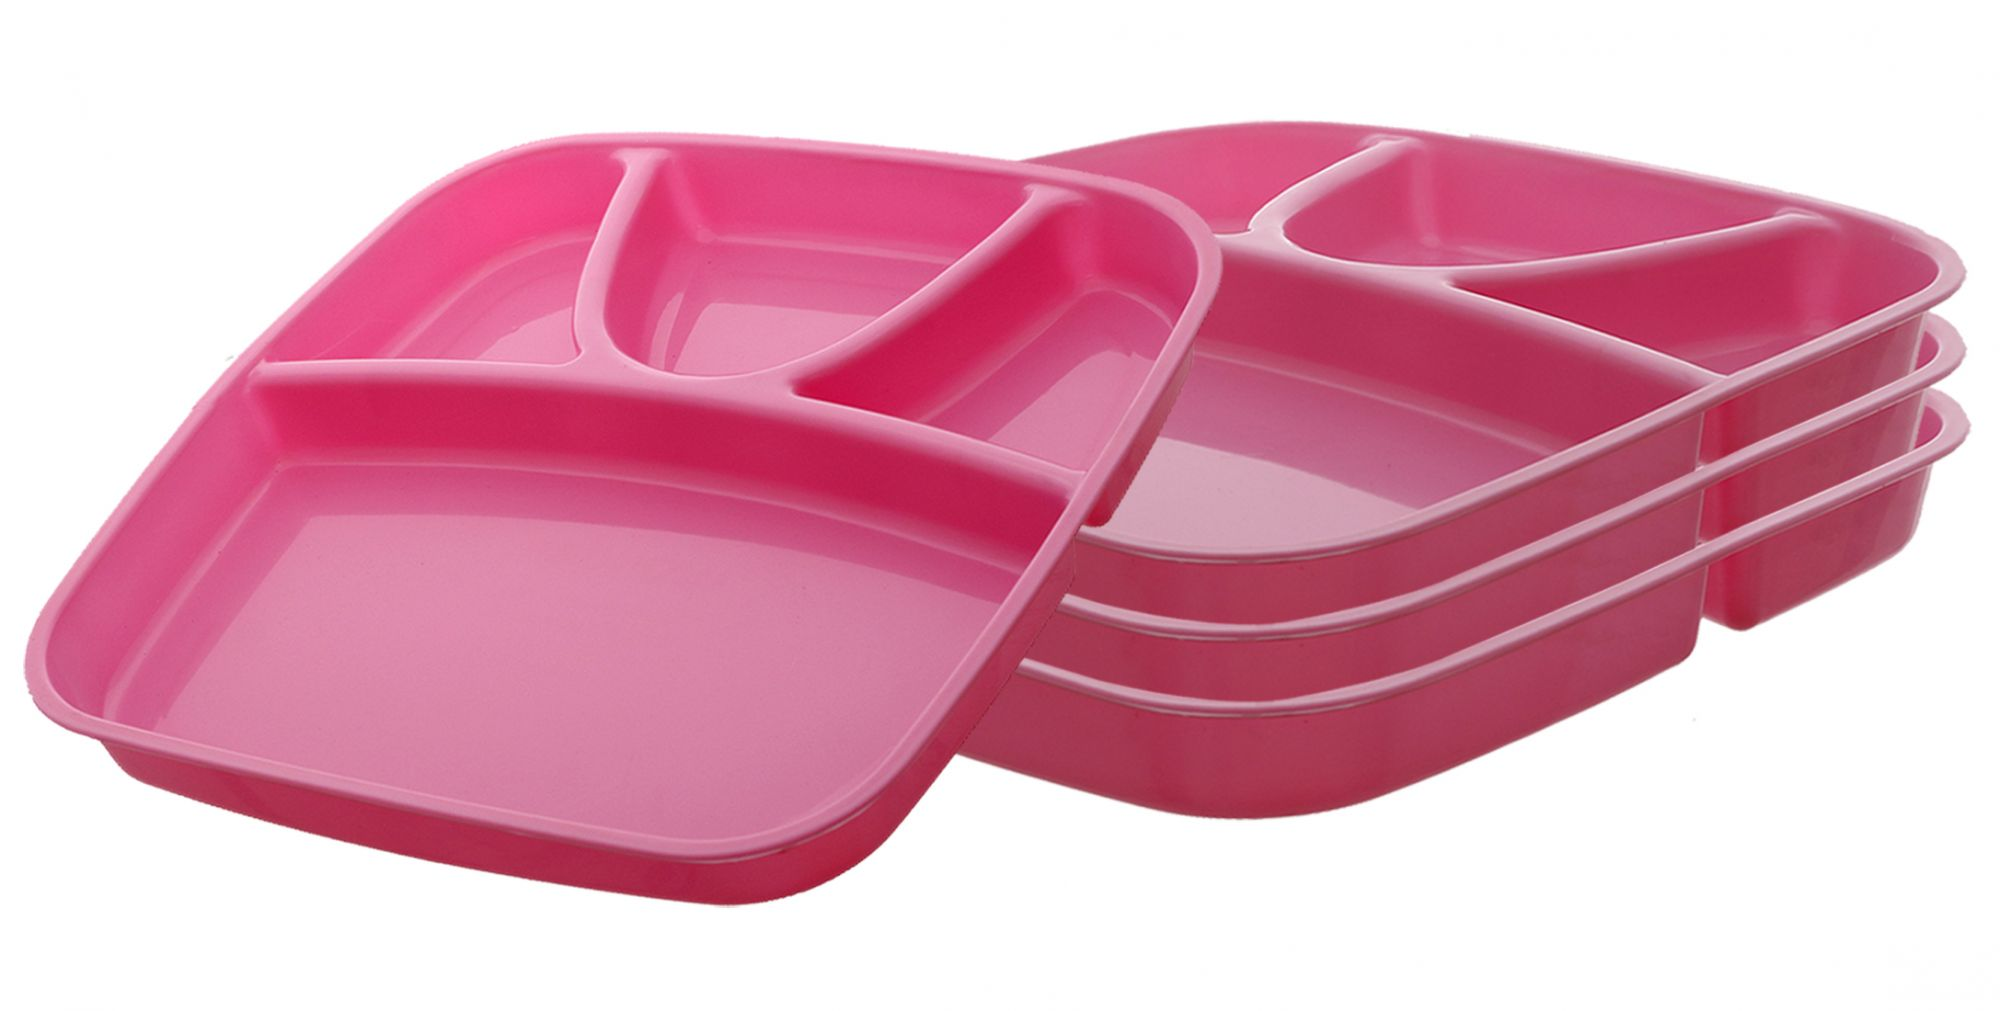 Kuber Industries 4 Pieces Microwave Safe Unbreakable Plastic Food Plate with Partitions (Pink) - CTKTC34705